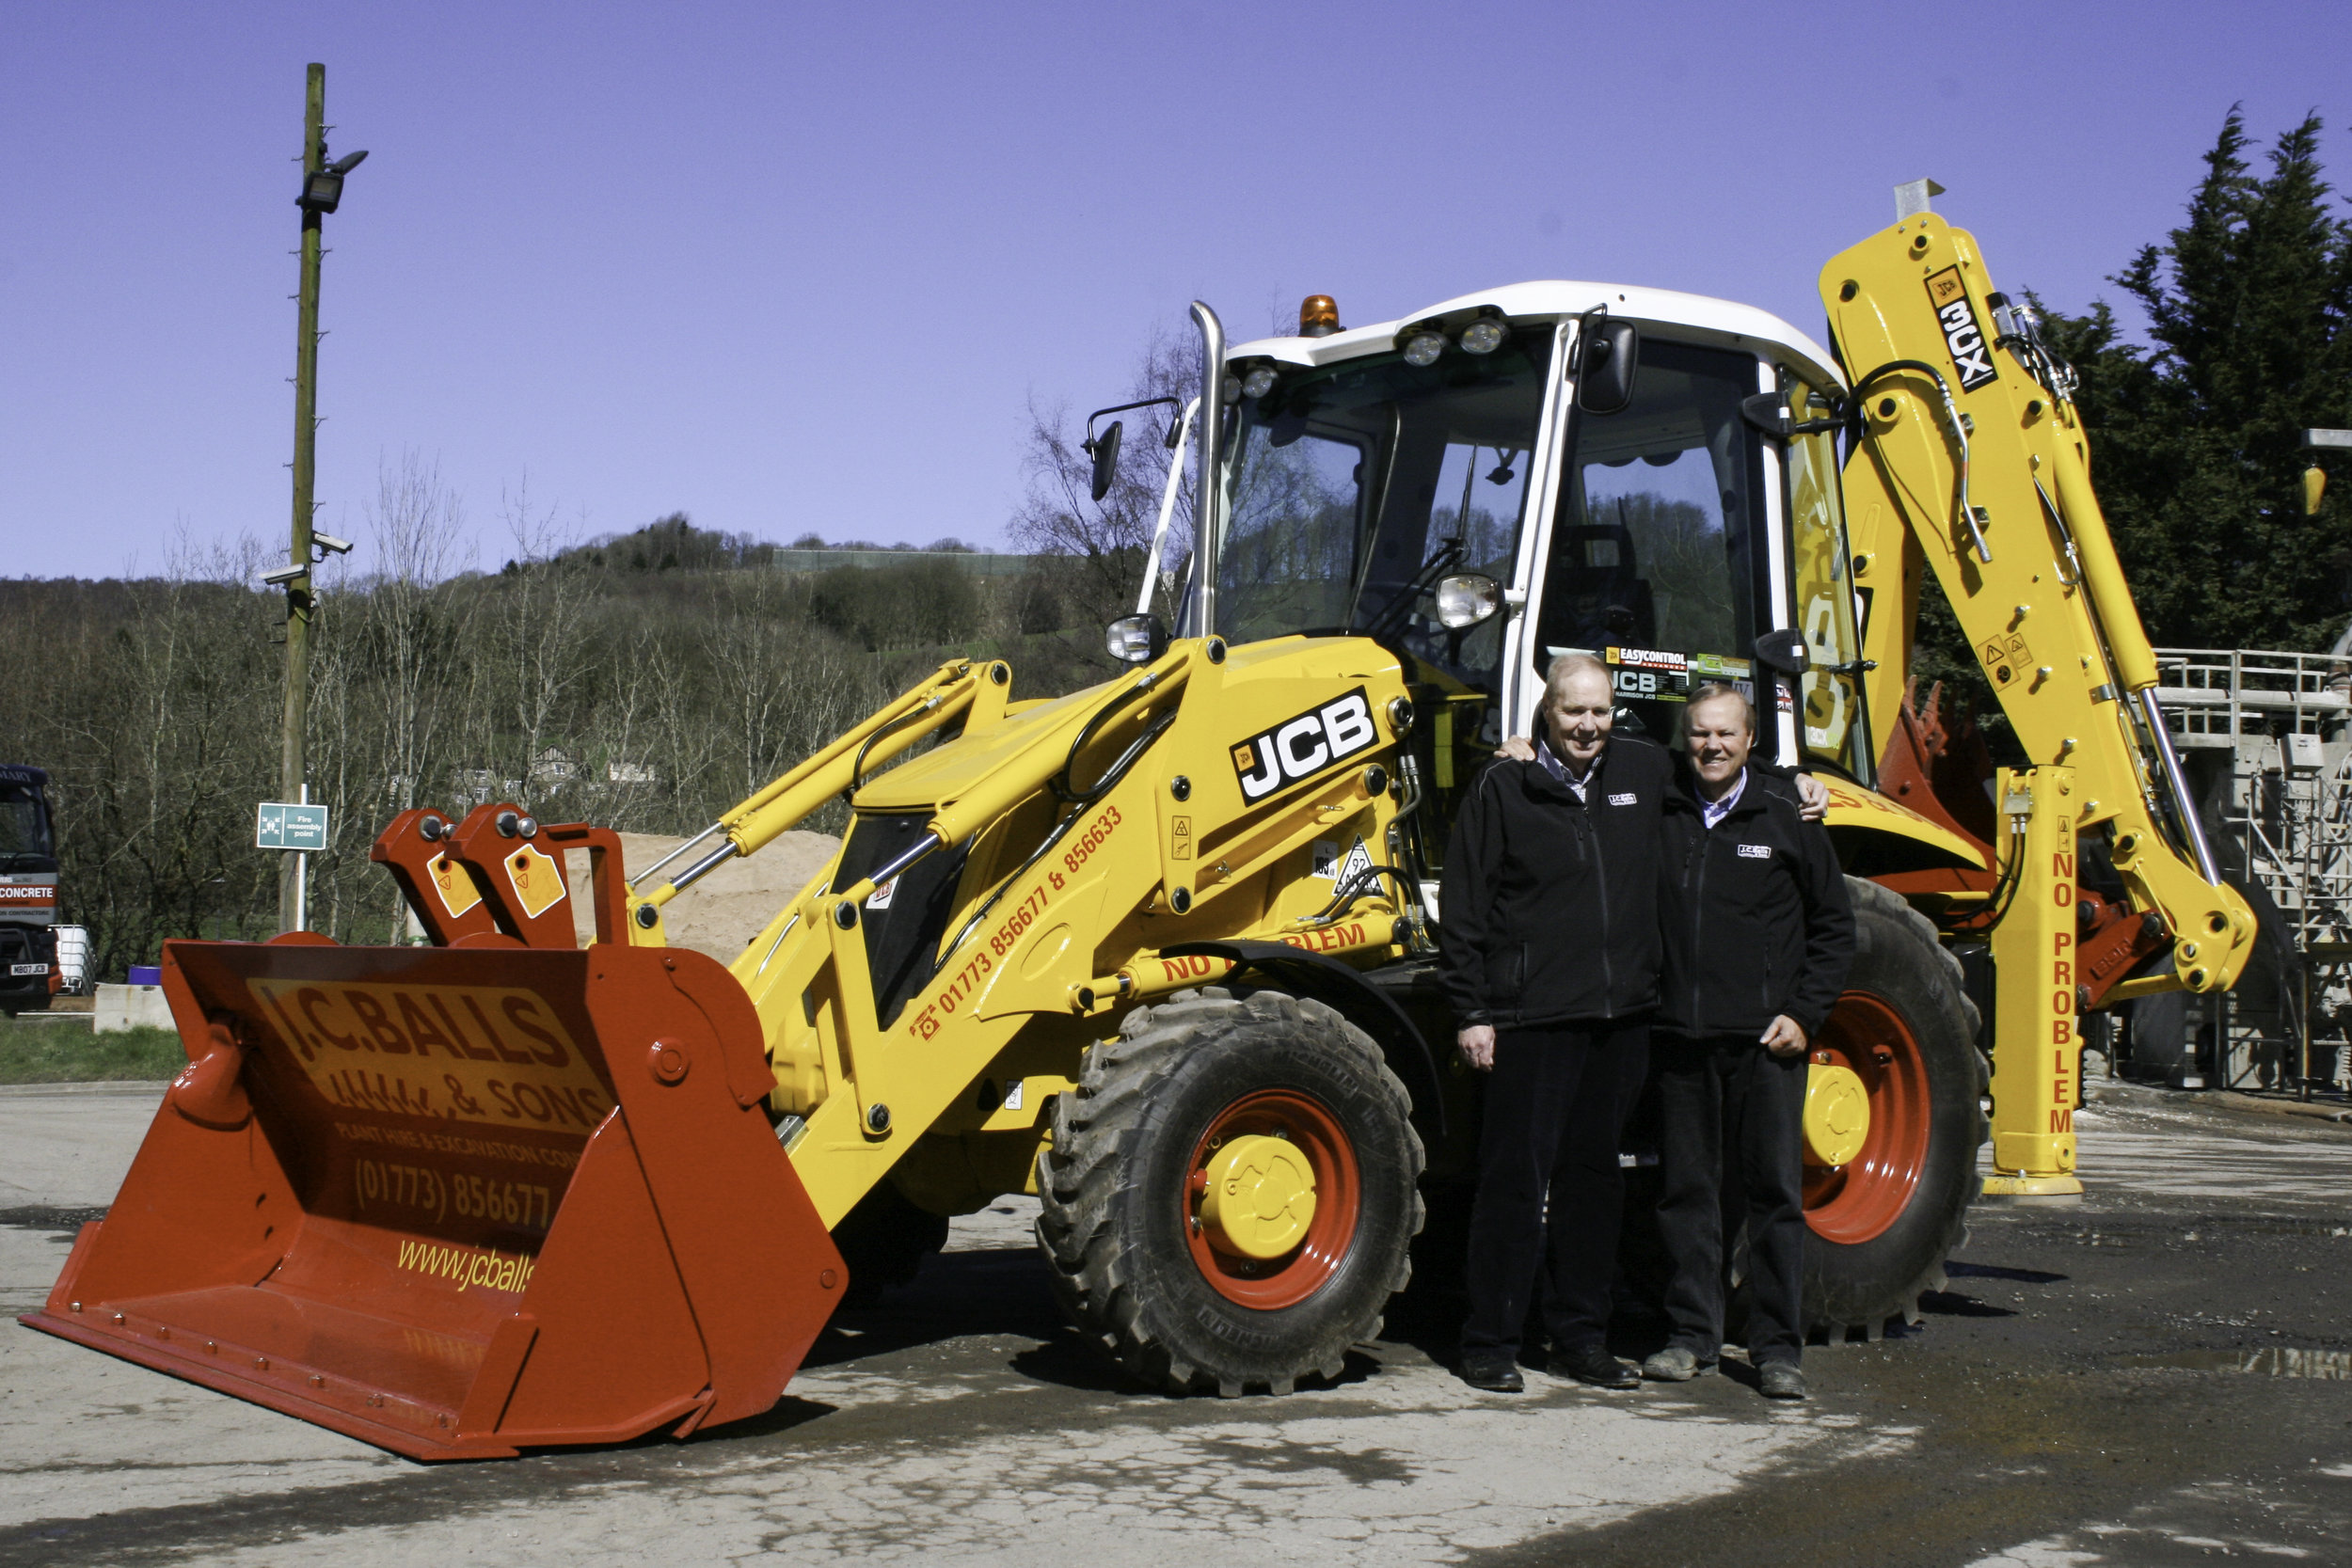 Chris and Kevin Balls are the brains behind the JC Balls Dancing Diggers, who will return to the Derbyshire County Show for 2018: Penguin PR - public relations, media and communications